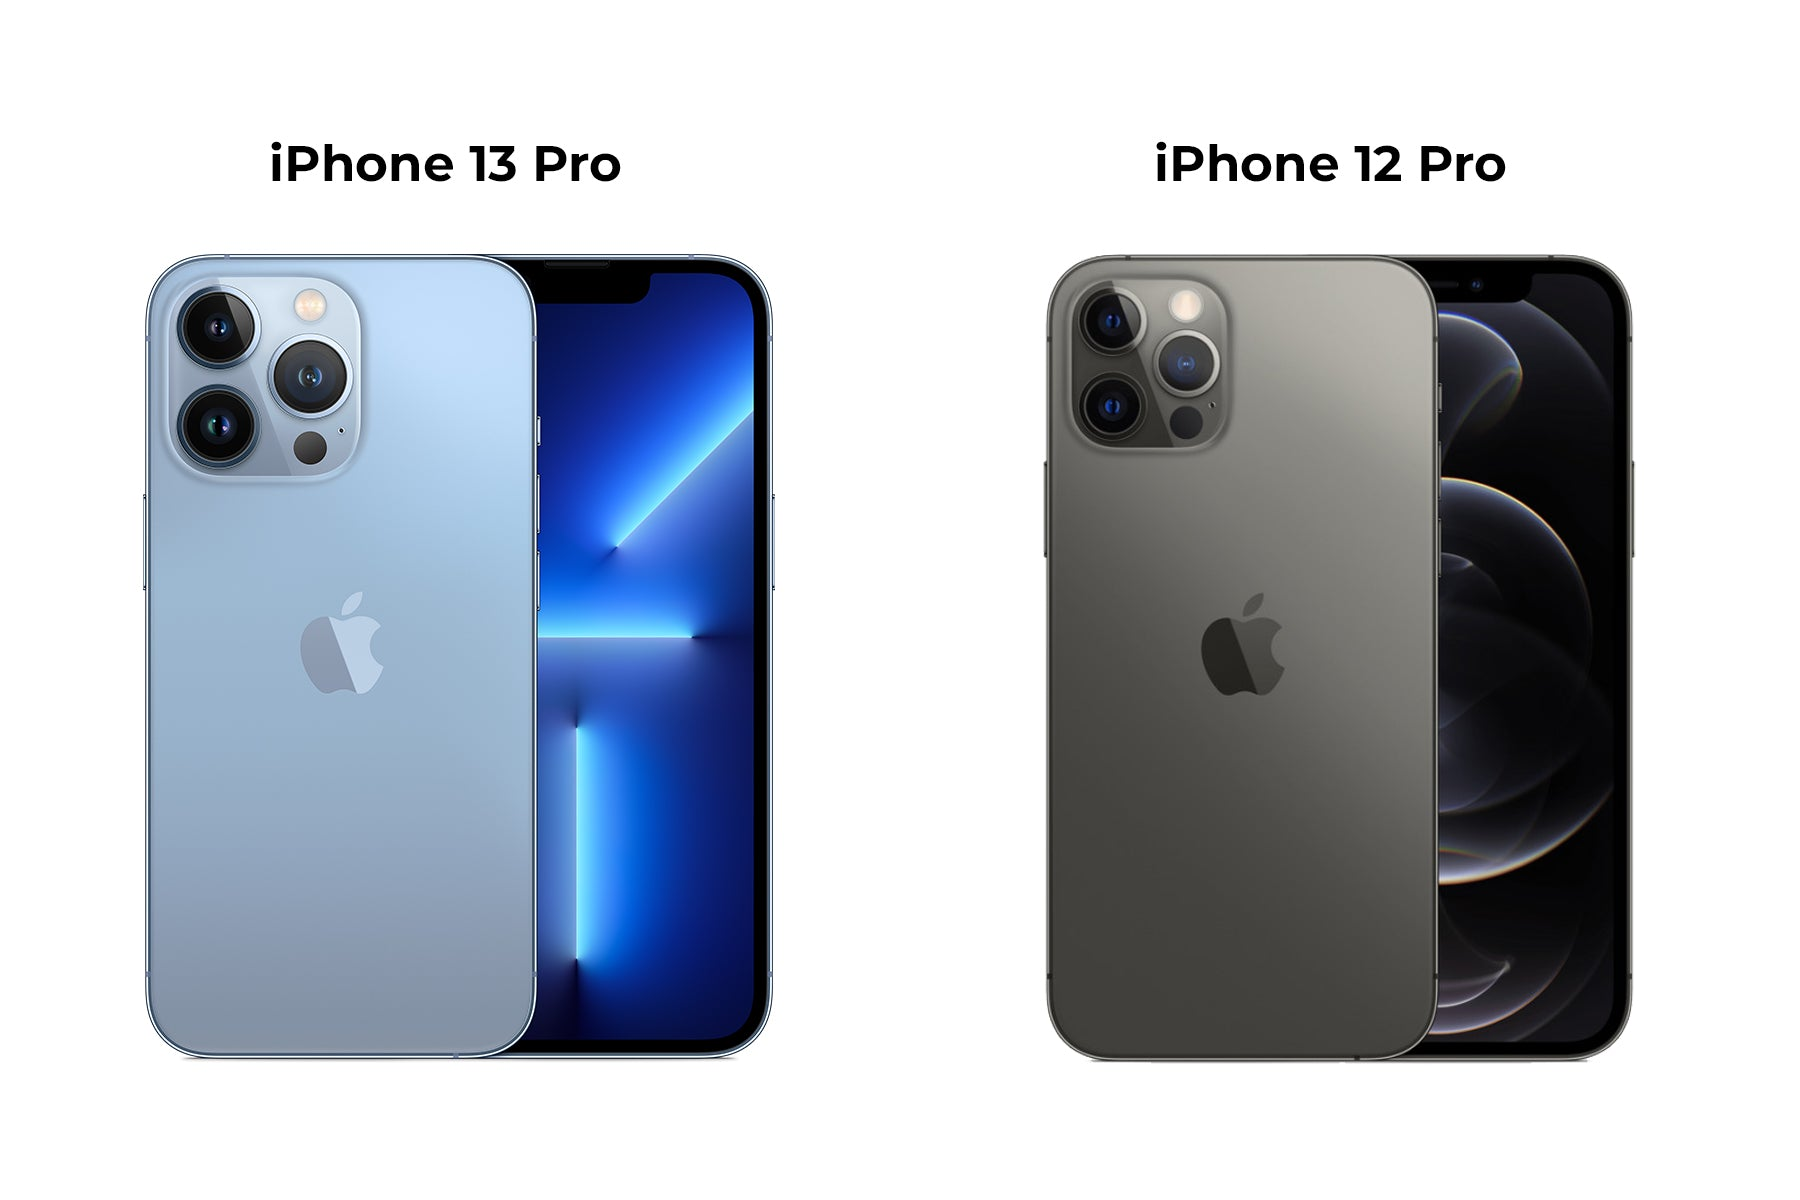 iPhone 12 Pro compared to iPhone 13 Pro